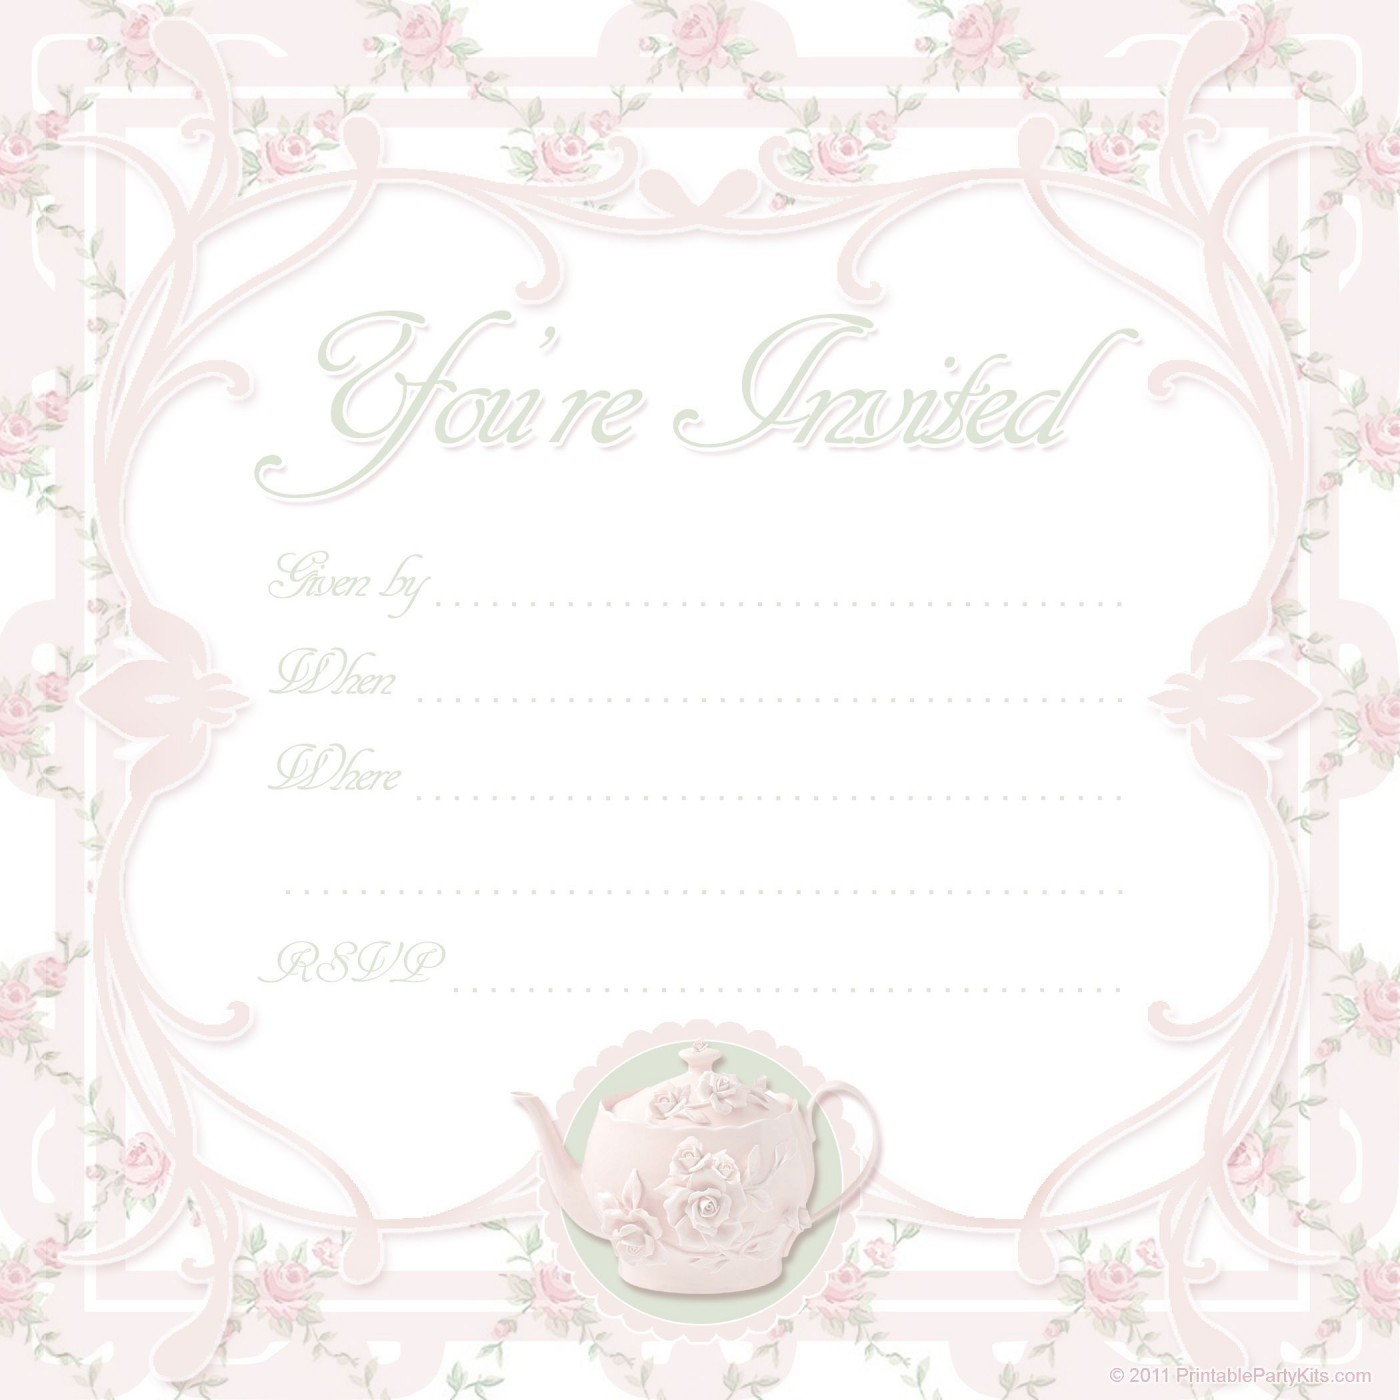 000 Awesome Tea Party Invitation Template High Def  Card Victorian Wording For Bridal Shower1400